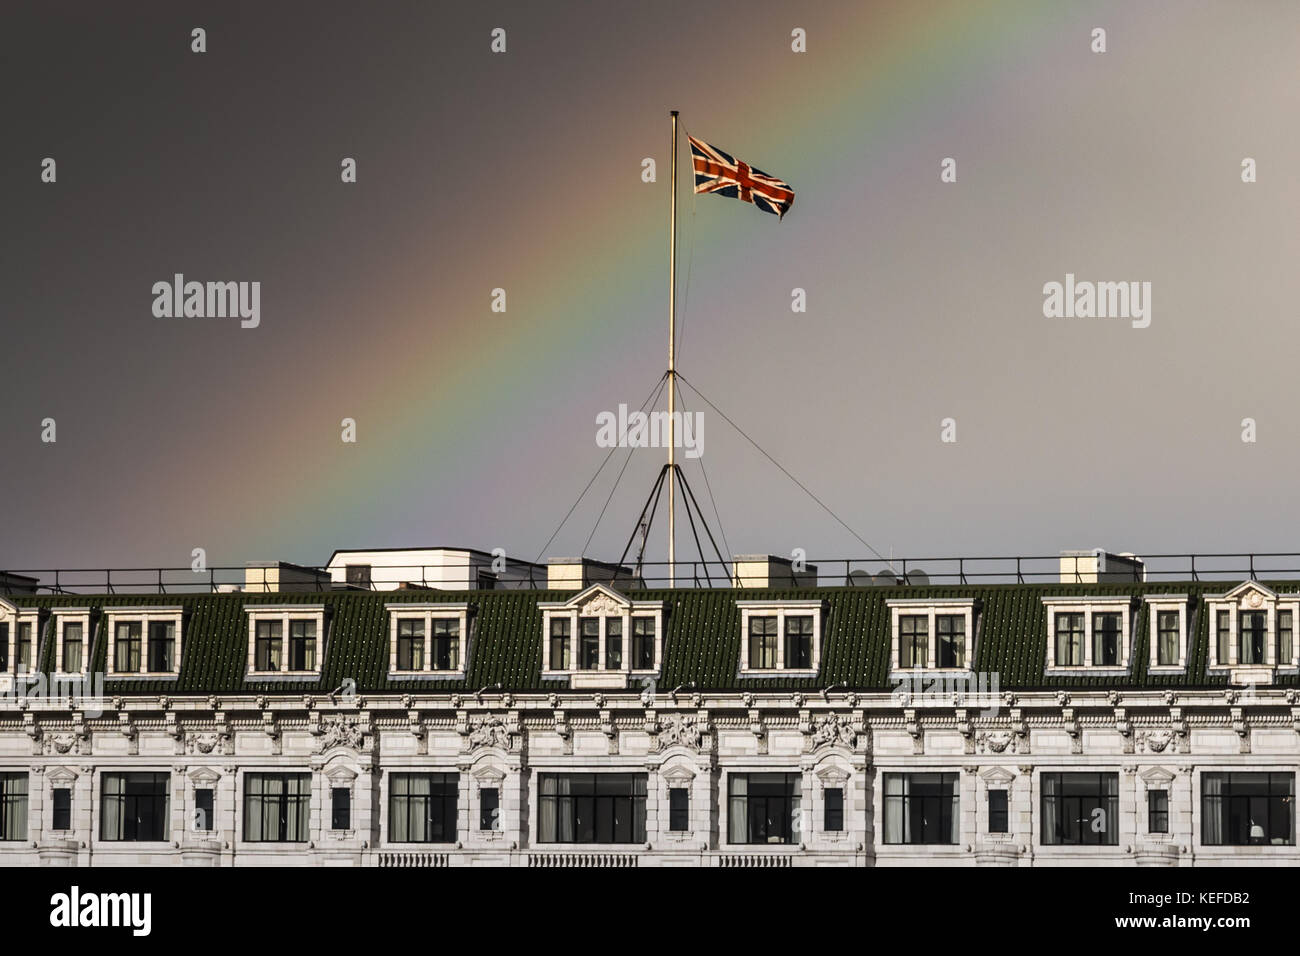 London, UK. 21st Oct, 2017. UK Weather: Storm Brian brings a rainbow over the Savoy Hotel. Credit: Guy Corbishley/Alamy - Stock Image